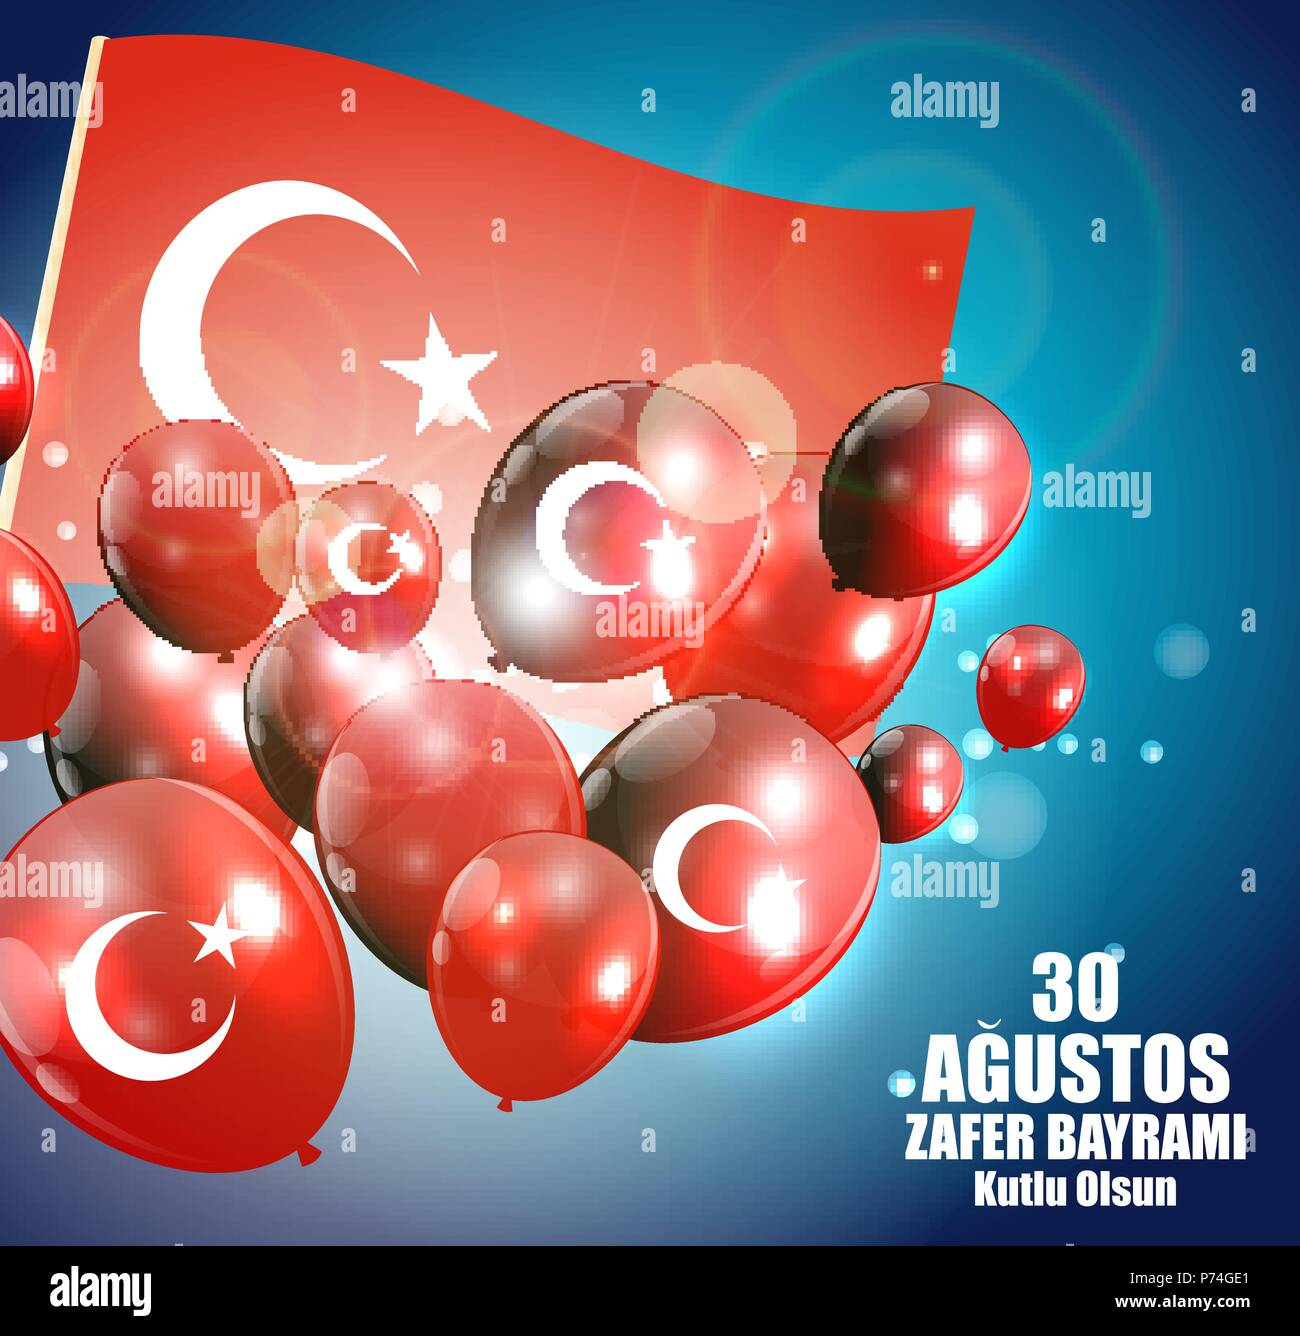 August 30, Victory Day (Turkish Speak: 0 Agustos, Zafer Bayrami Kutlu Olsun). Vector Illustration - Stock Vector